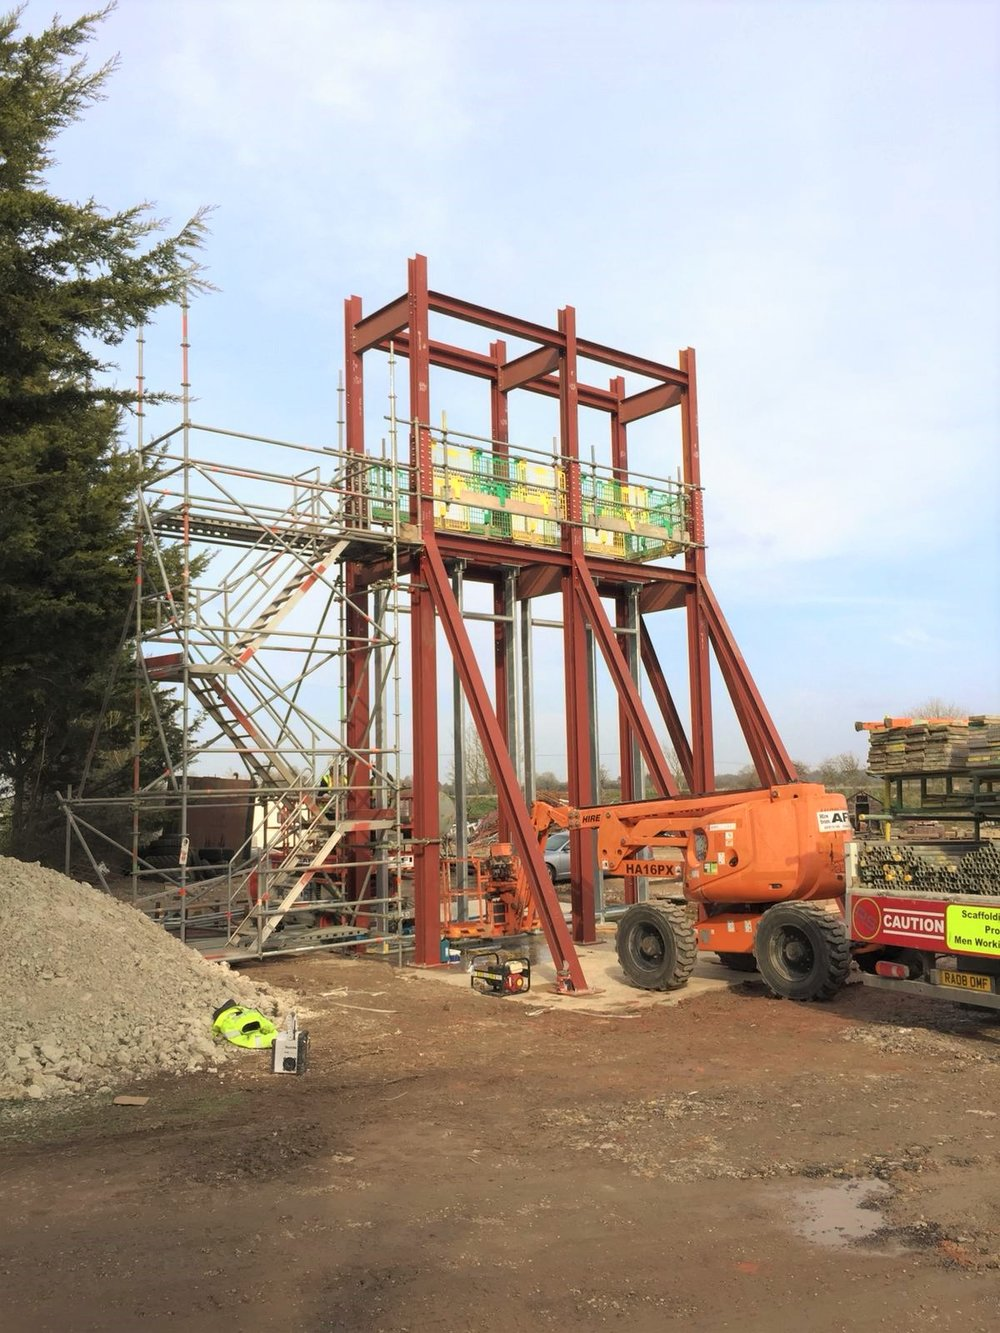 Royston-Scaffolding-projects-16.jpeg